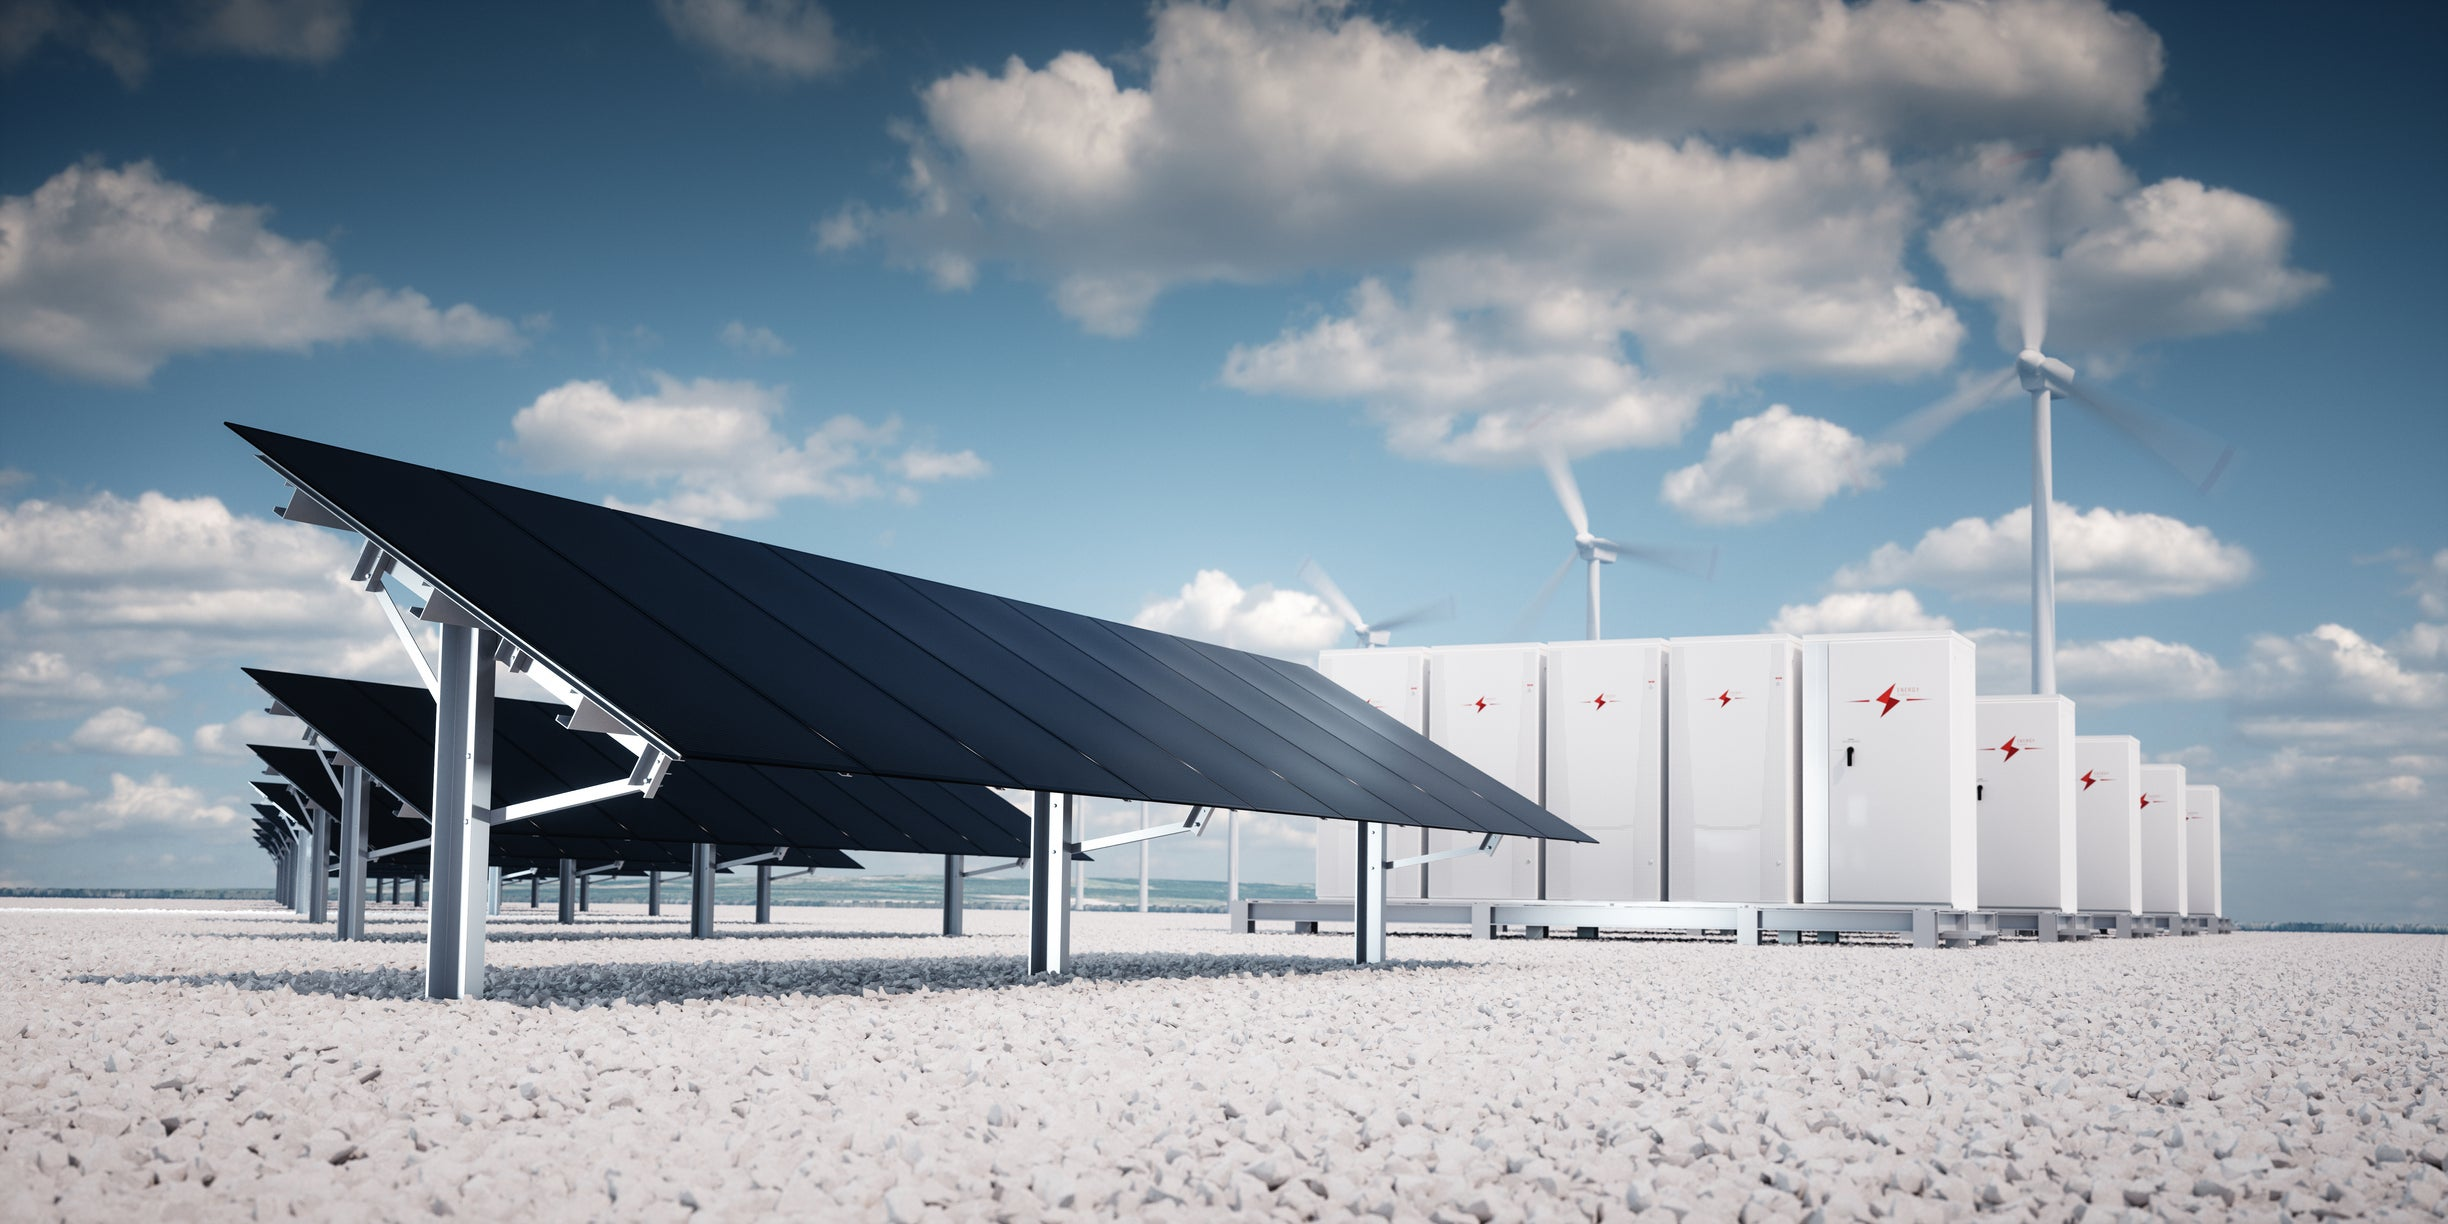 Where to Store (and Invest In) All That Solar and Wind Power | The Motley Fool